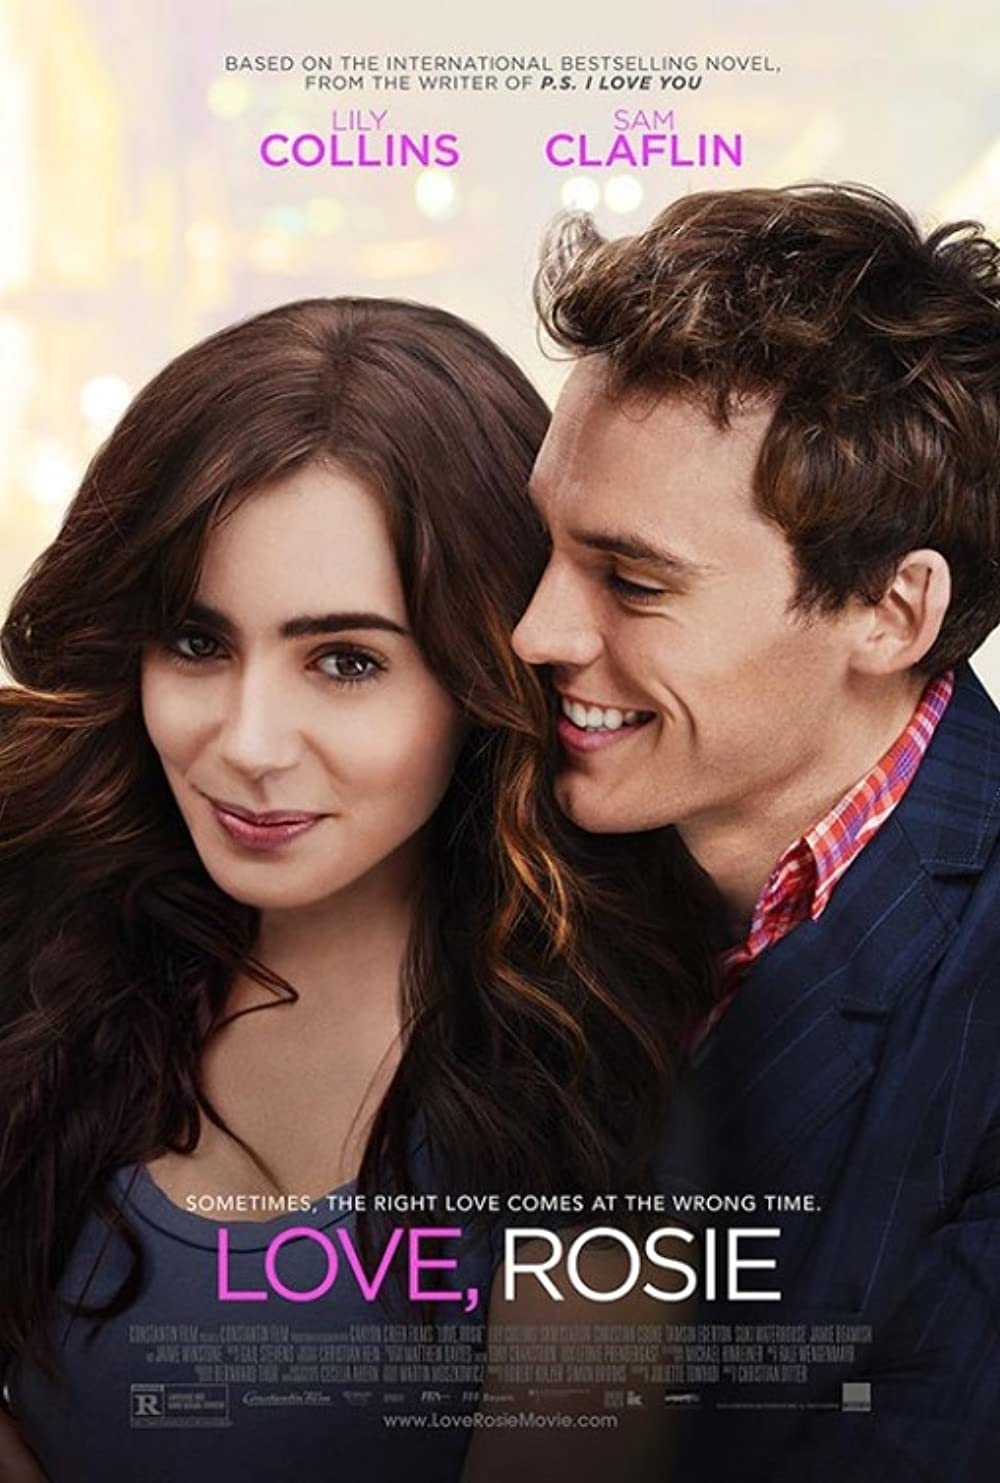 18+ Love, Rosie 2014 Hindi Dual Audio 720p BluRay ESubs 850MB x264 AAC